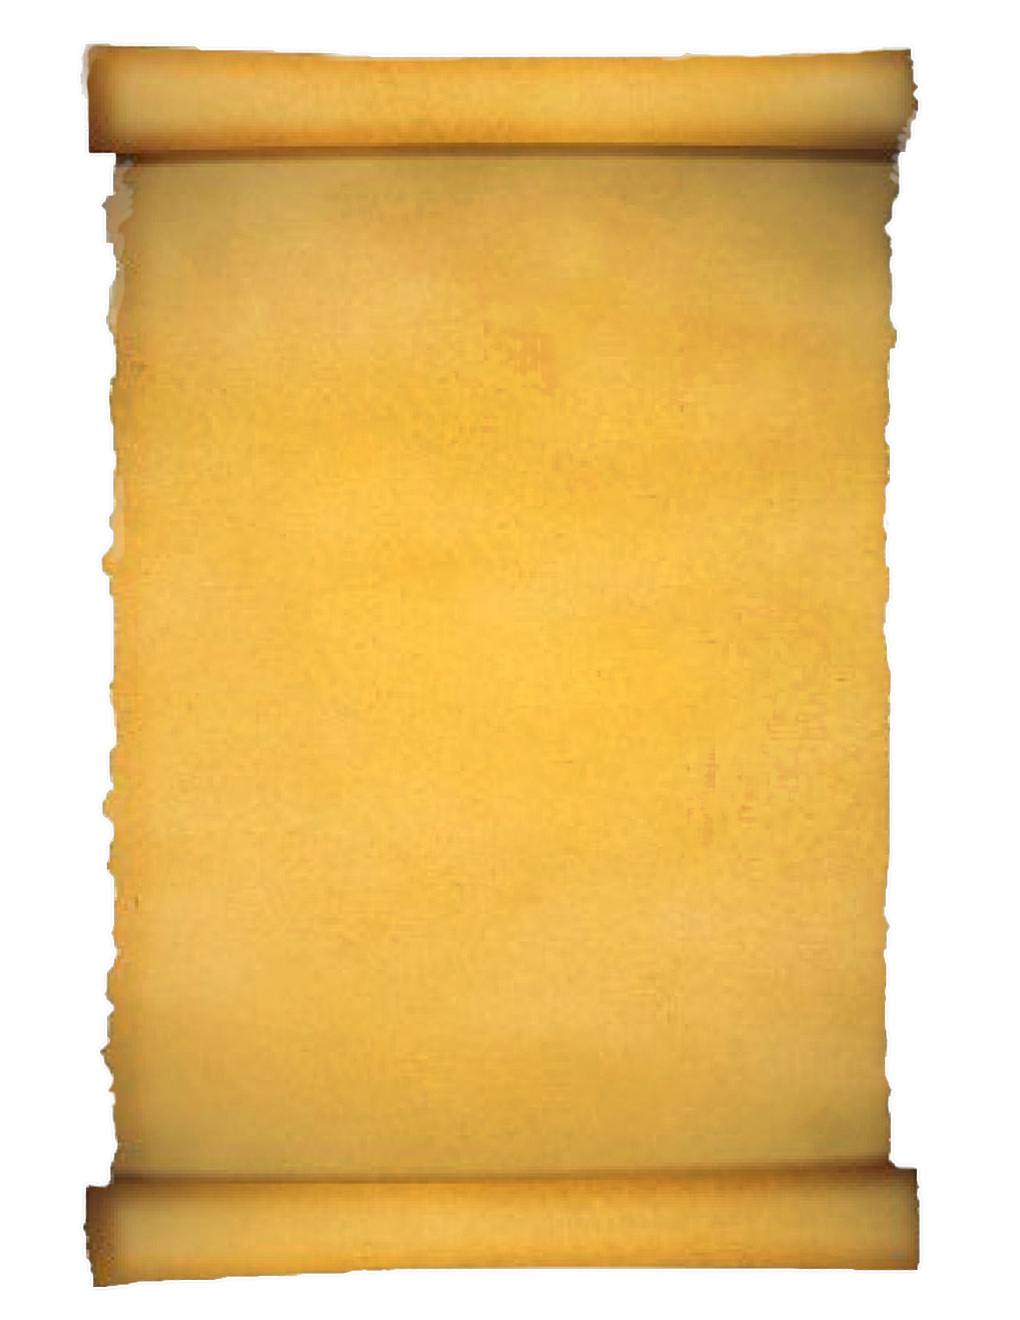 Old scroll paper png. Download free image transparent